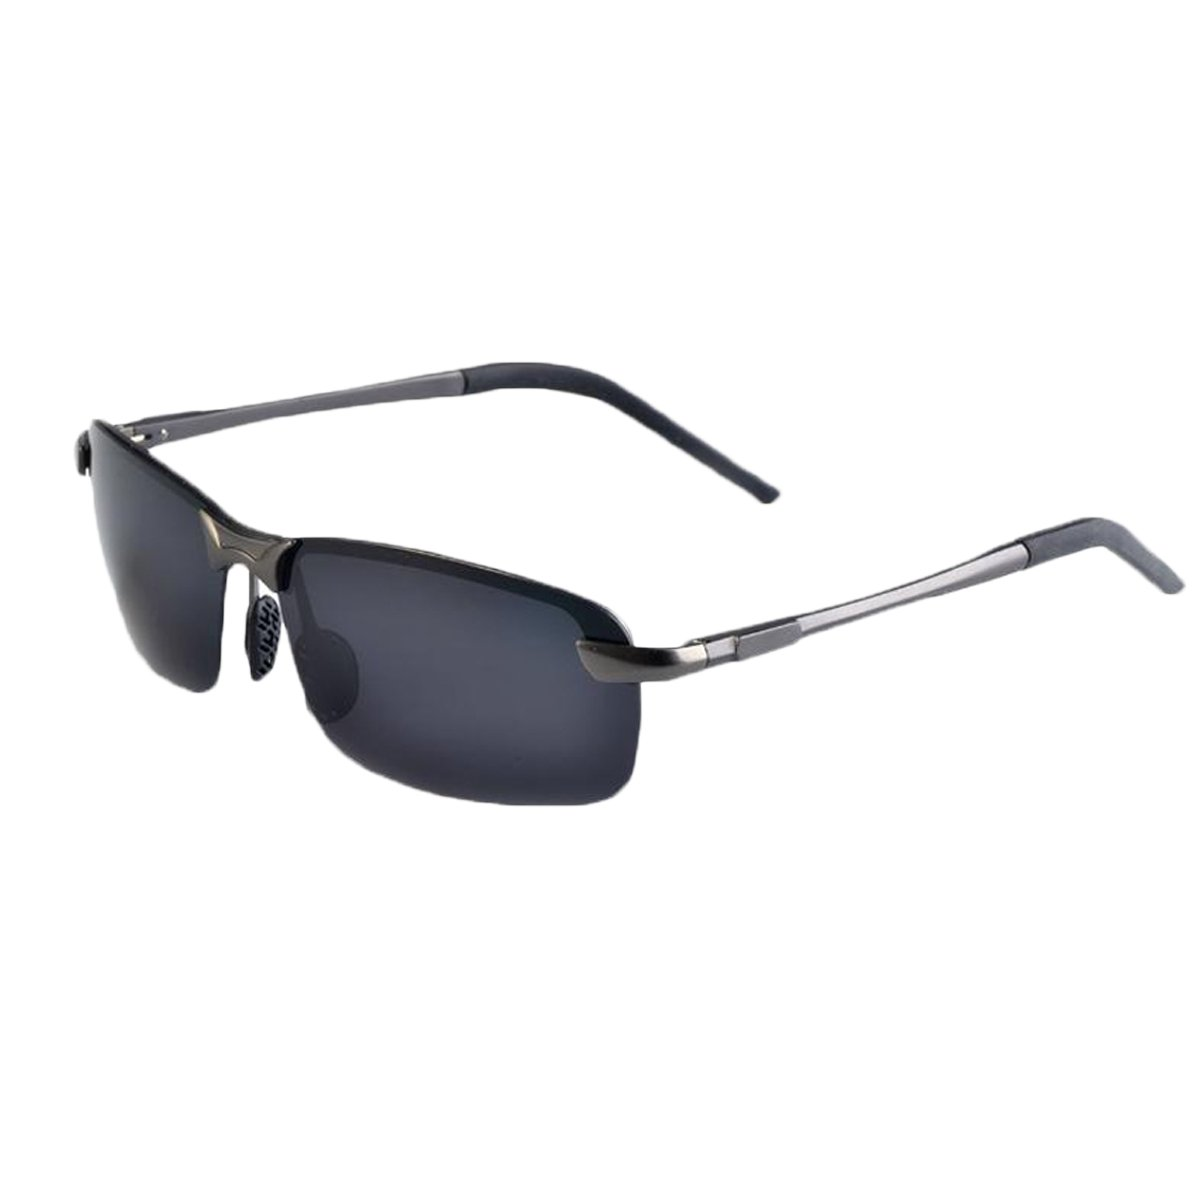 6aaa70717a4 zando anti-reflective coating lens fashion unbreakable half frame men  sunglasses silver-black frame black lens  Amazon.in  Clothing   Accessories